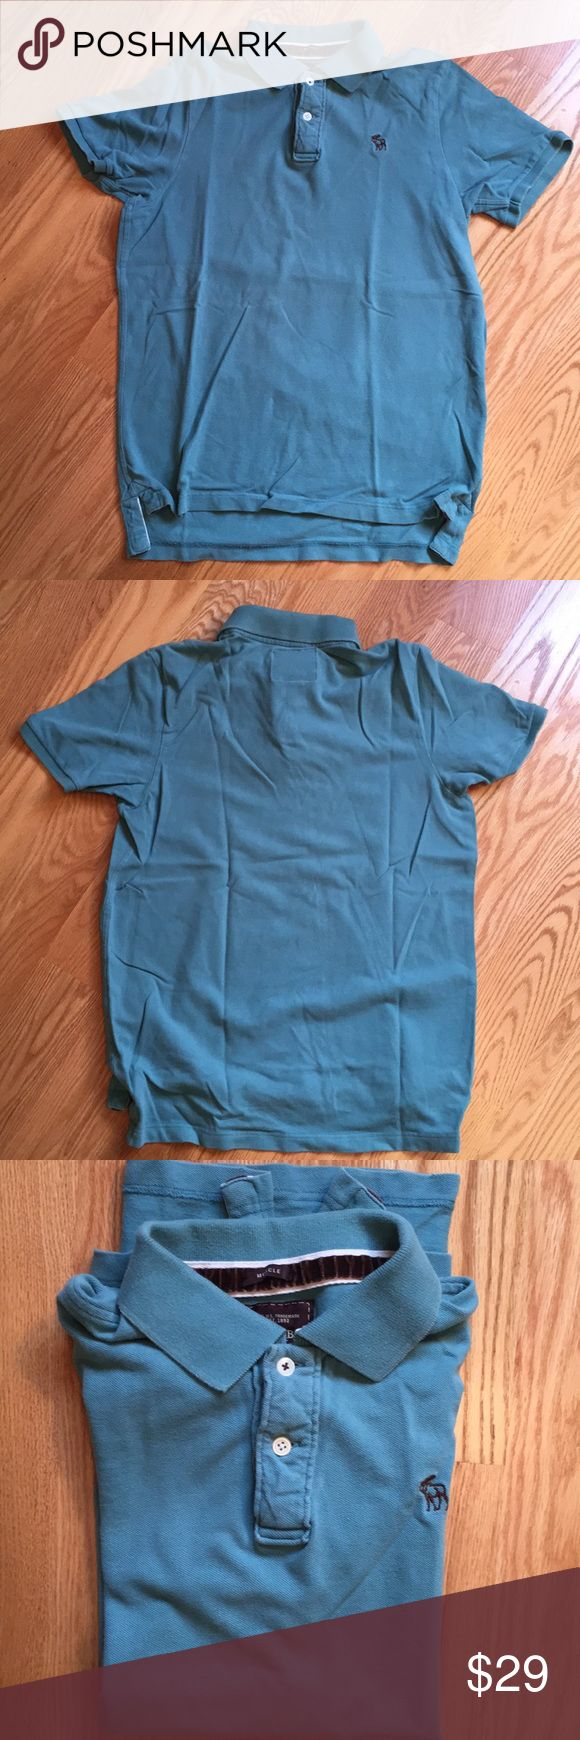 Abercrombie men's short sleeves polo shirt In great condition, 100% cotton. Turquoise color Abercrombie & Fitch Shirts Polos